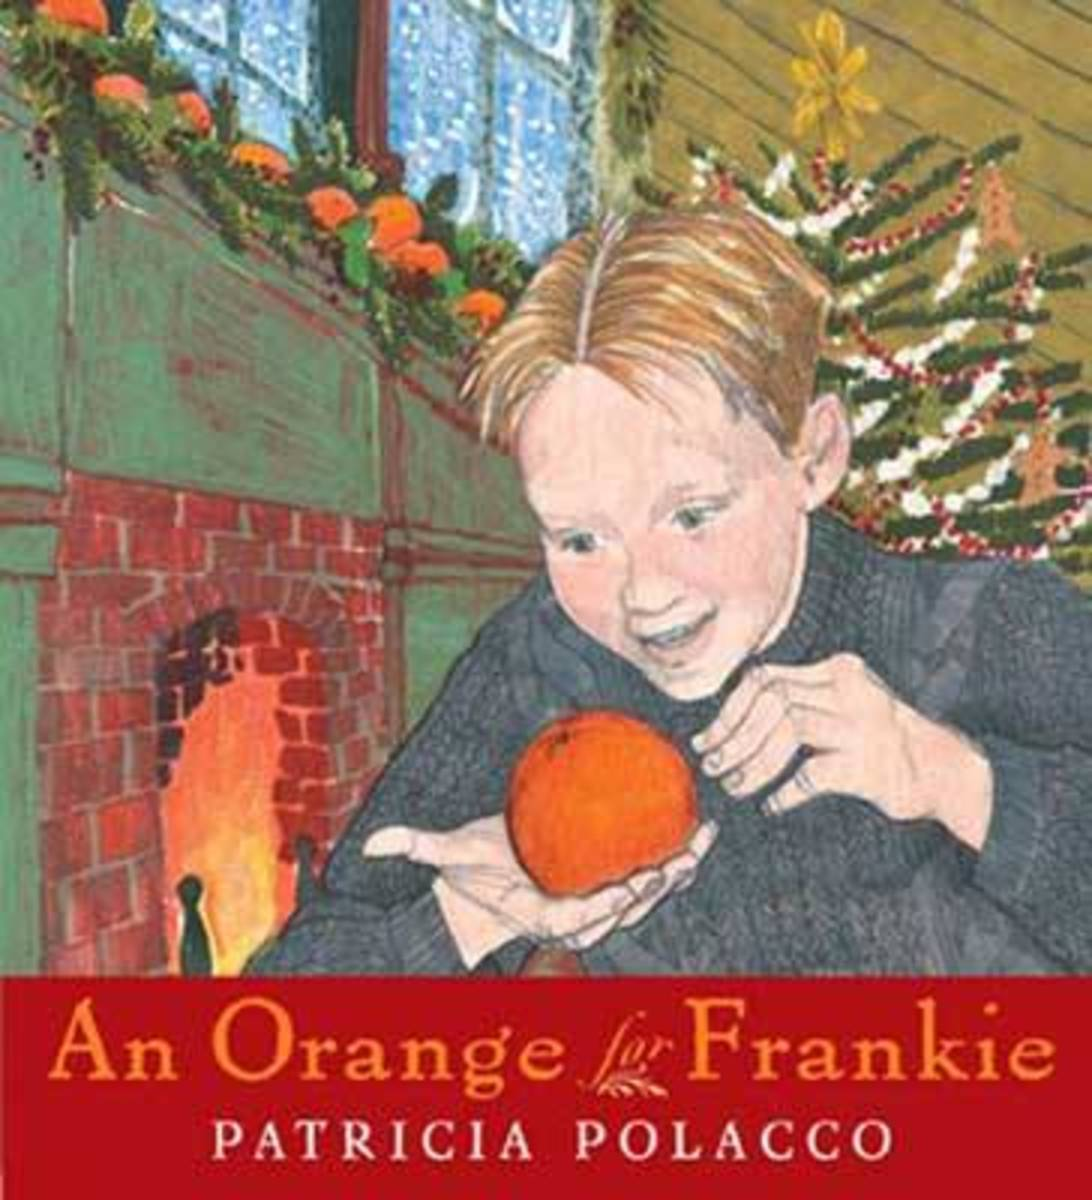 An Orange for Frankie by Patricia Polacco Children's Book Review